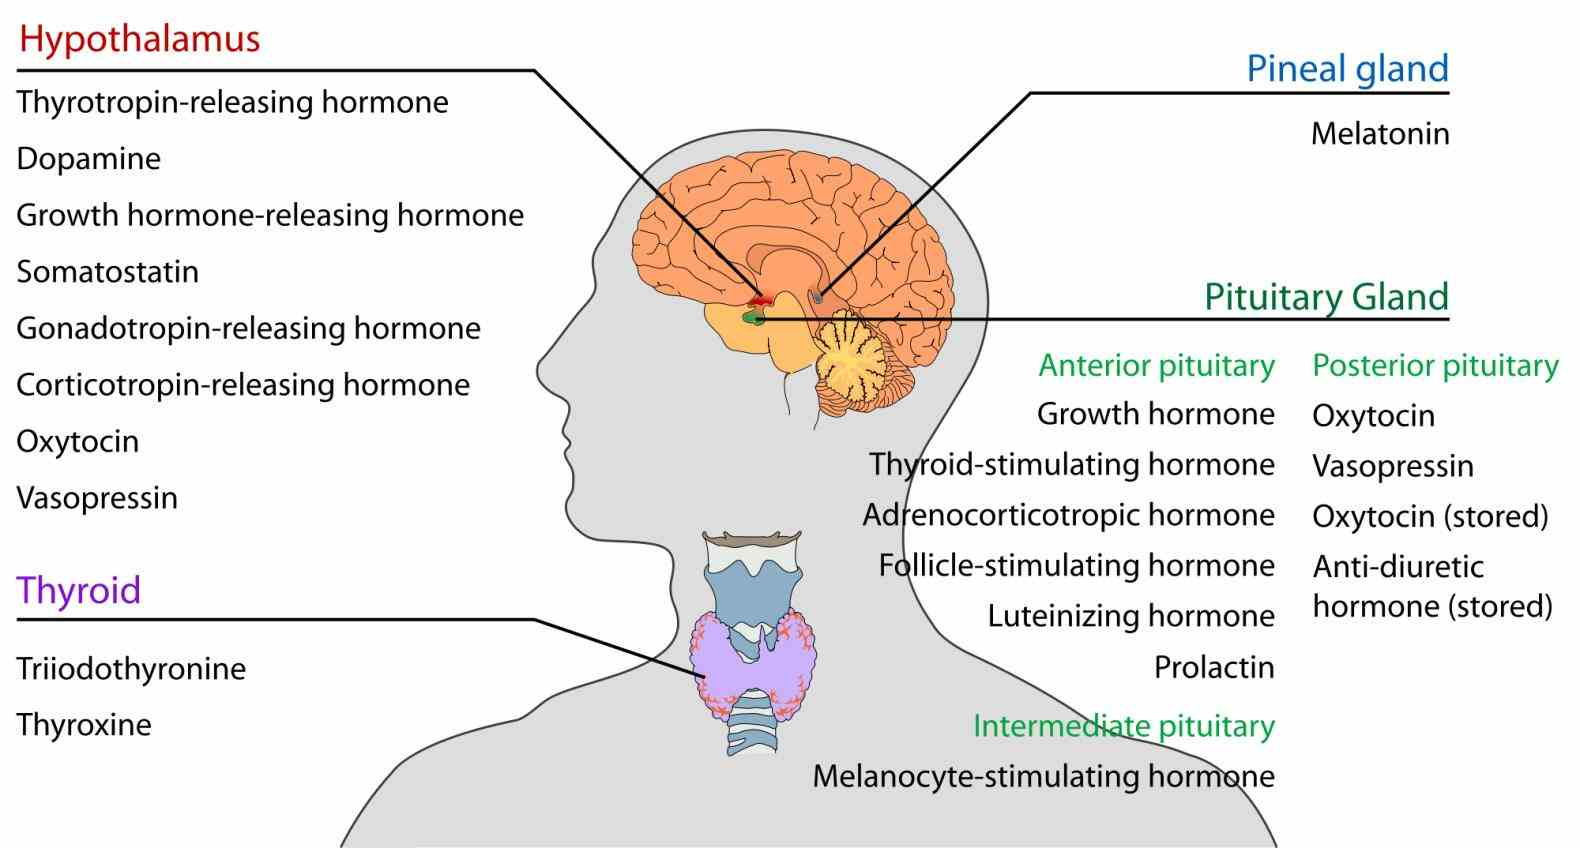 Endocrine System Organ Functions Pictures Wallpapers